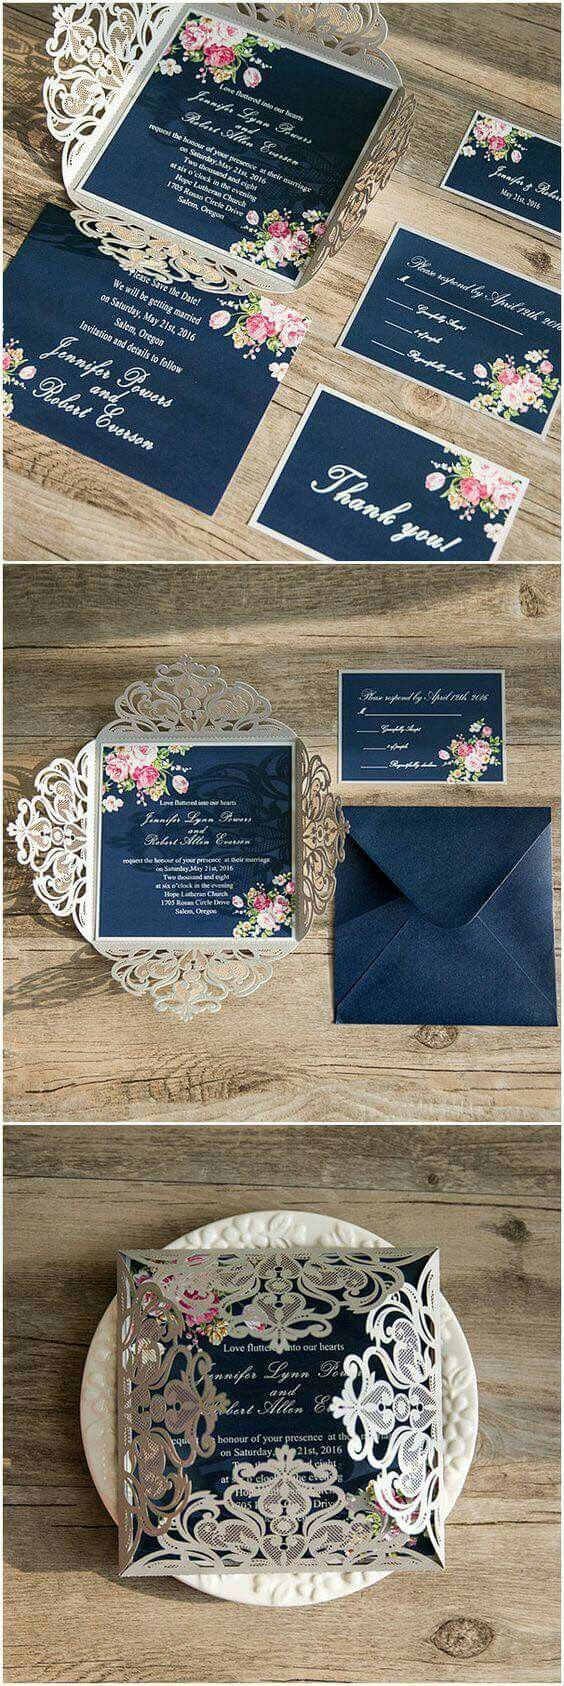 elegant wedding invites coupon codes%0A shabby chic navy blue and pink laser cut floral wedding invitations   elegantwinvites